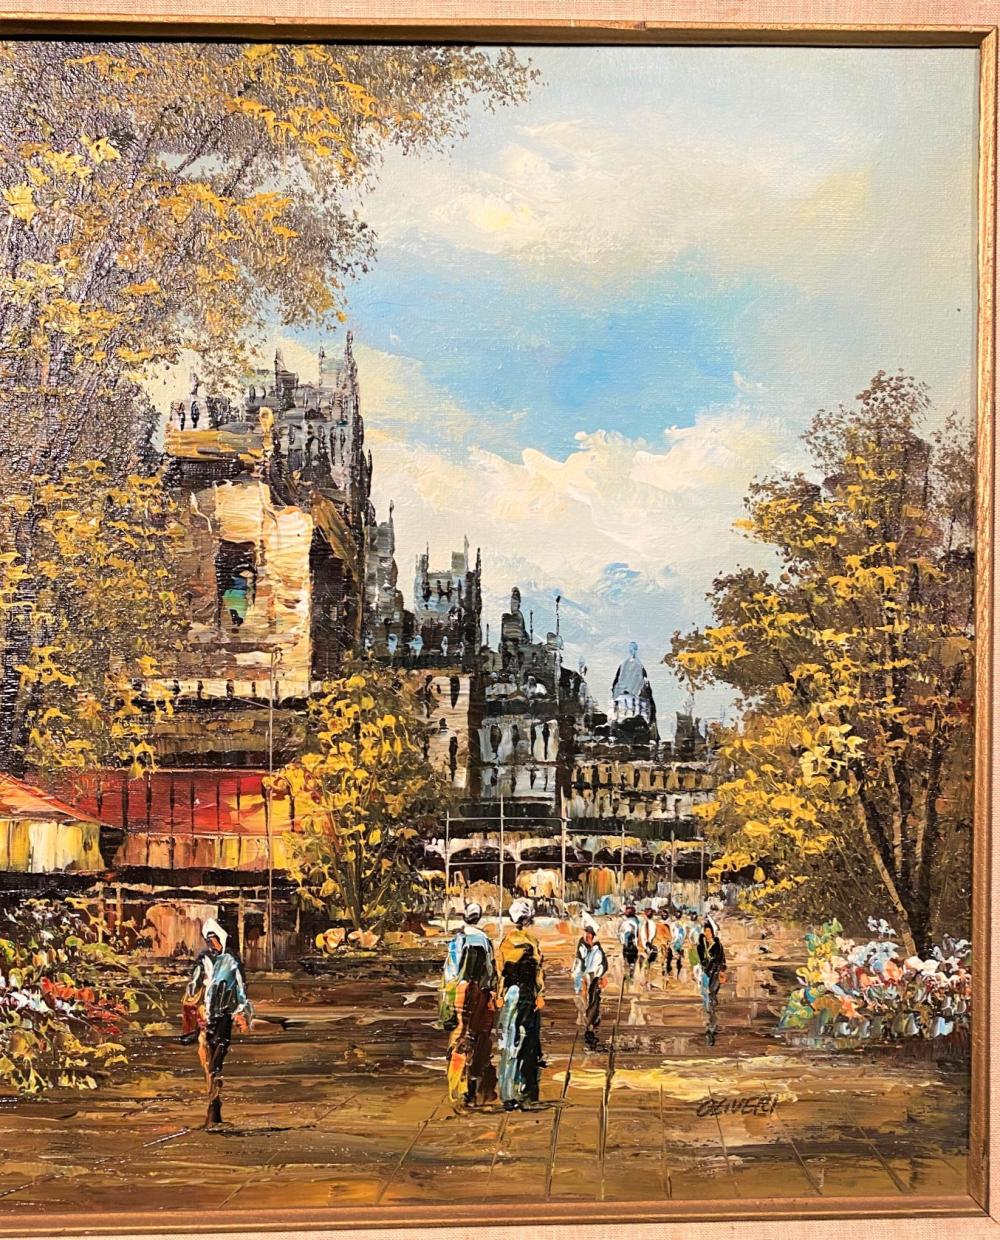 JOSEPH OLIVERI (1940-NOW) ORIGINAL OIL ON CANVAS CITYSCAPE PAINTING - 20 IN x 24 IN